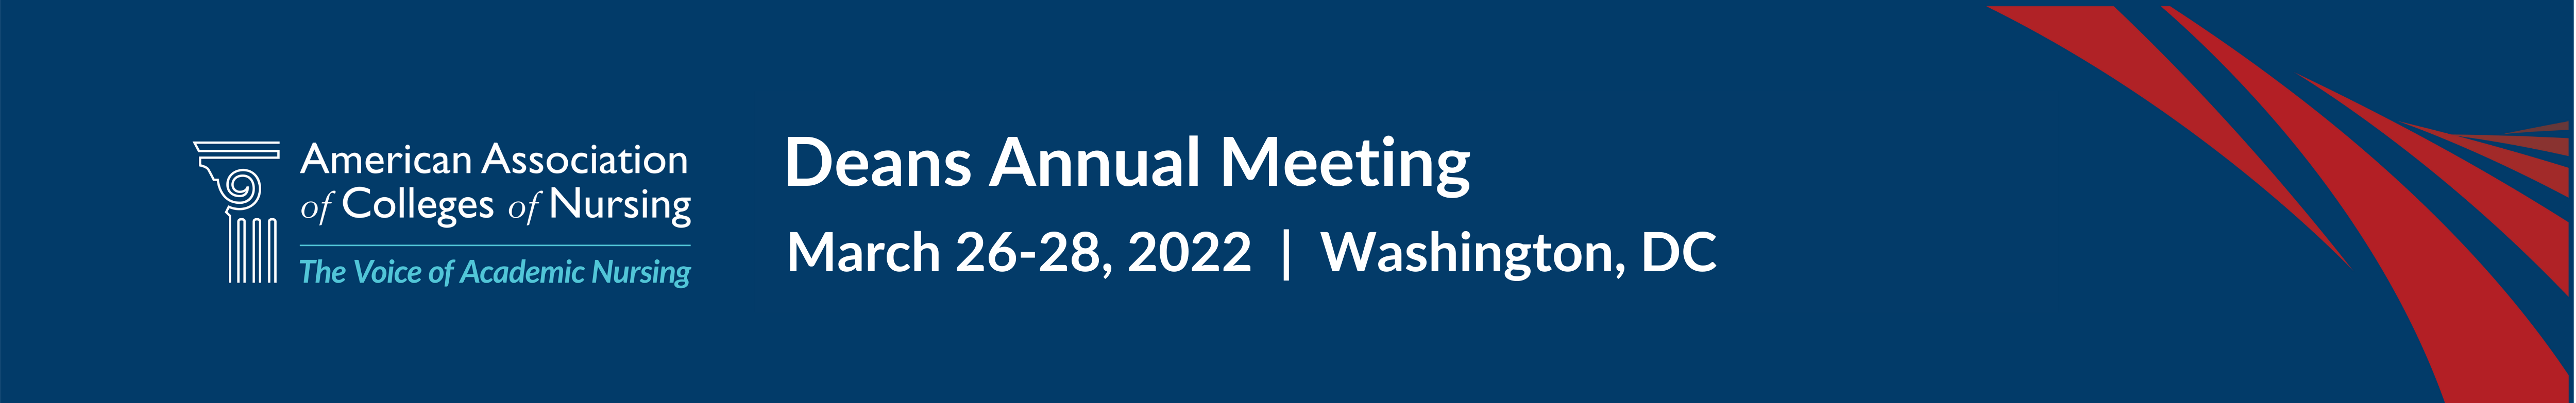 The 2022 Deans Annual Meeting. March 26-28, 2022. Washington DC